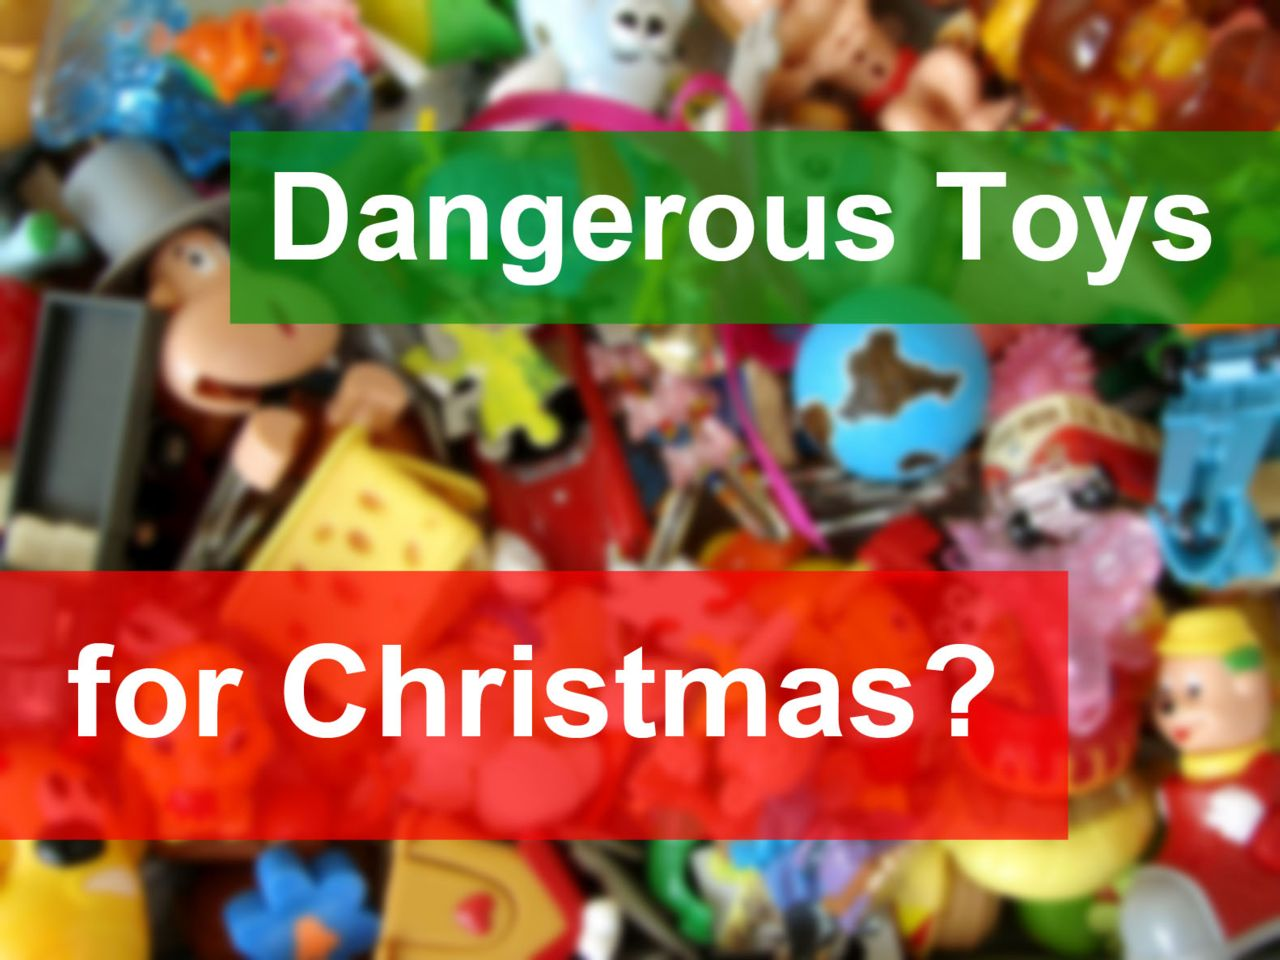 Picture of toys with wording Dangerous Toys for Christmas